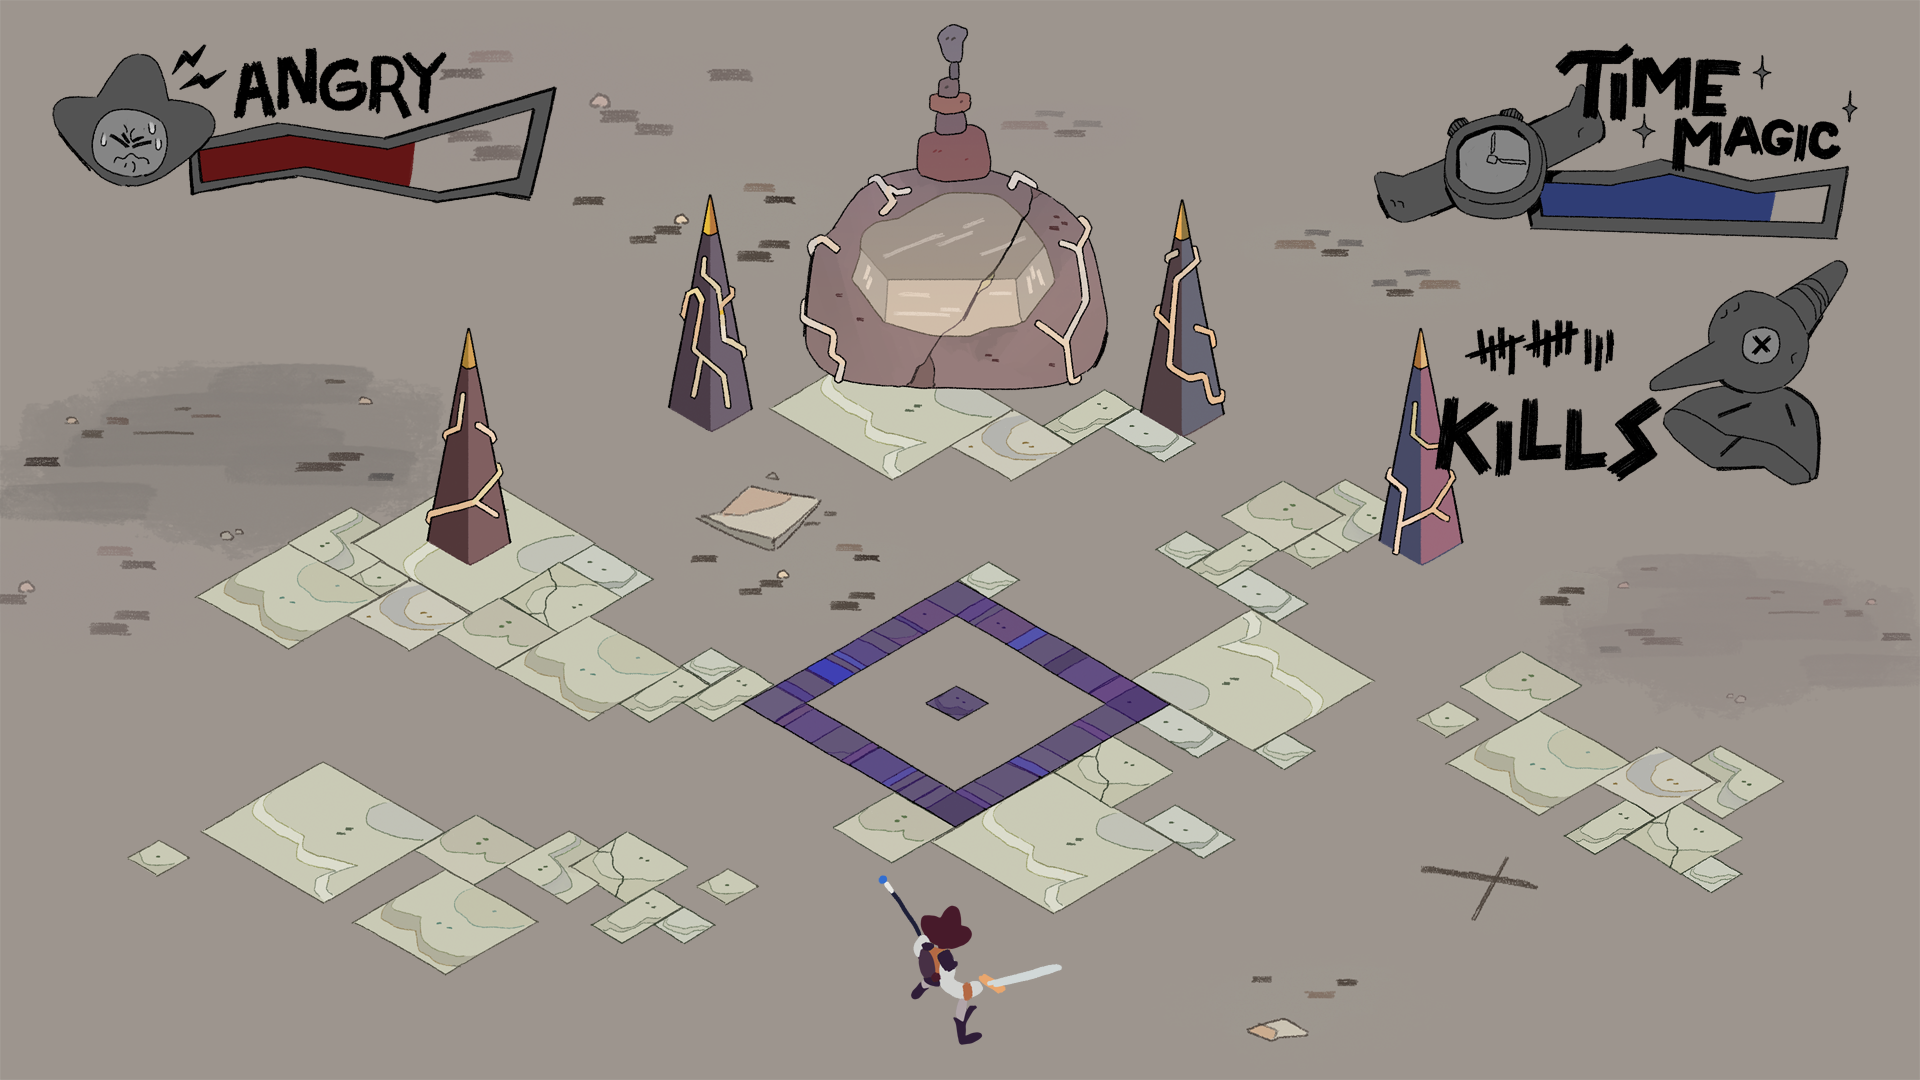 Mockup of the Final Arena including UI assets.